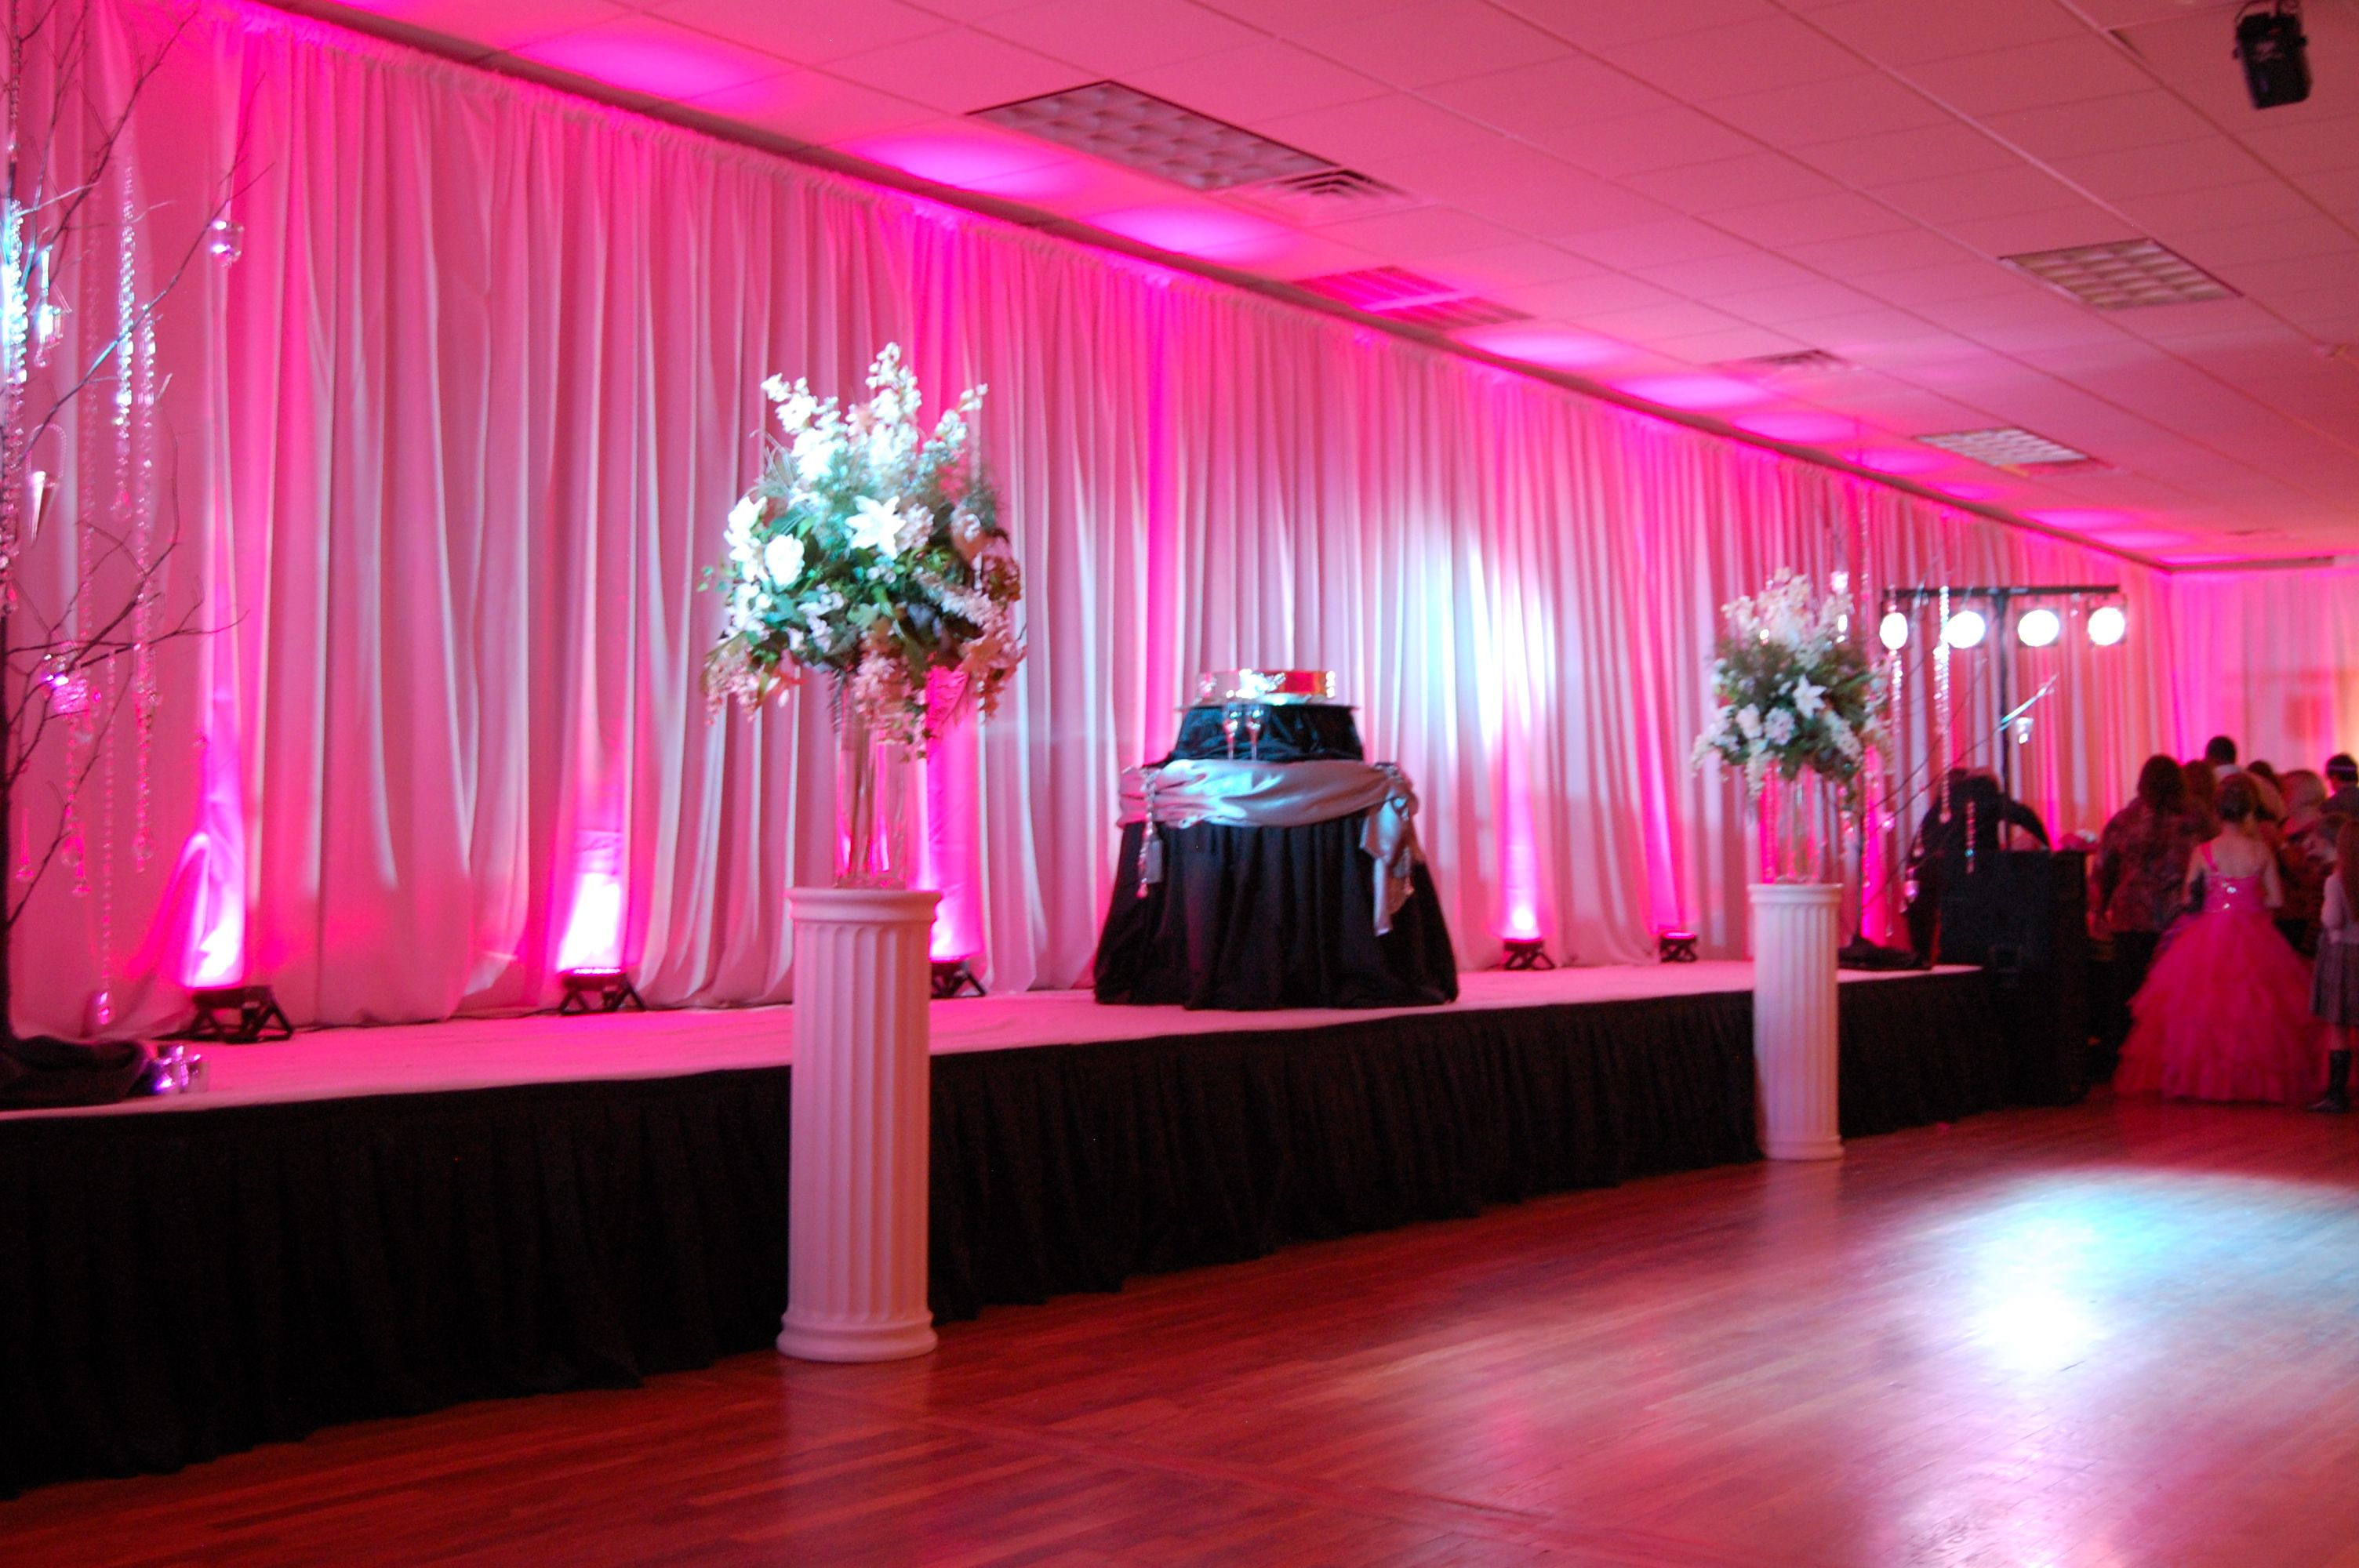 Pink Uplighting A DIY Setup By The Brides Mother RentMyWedding